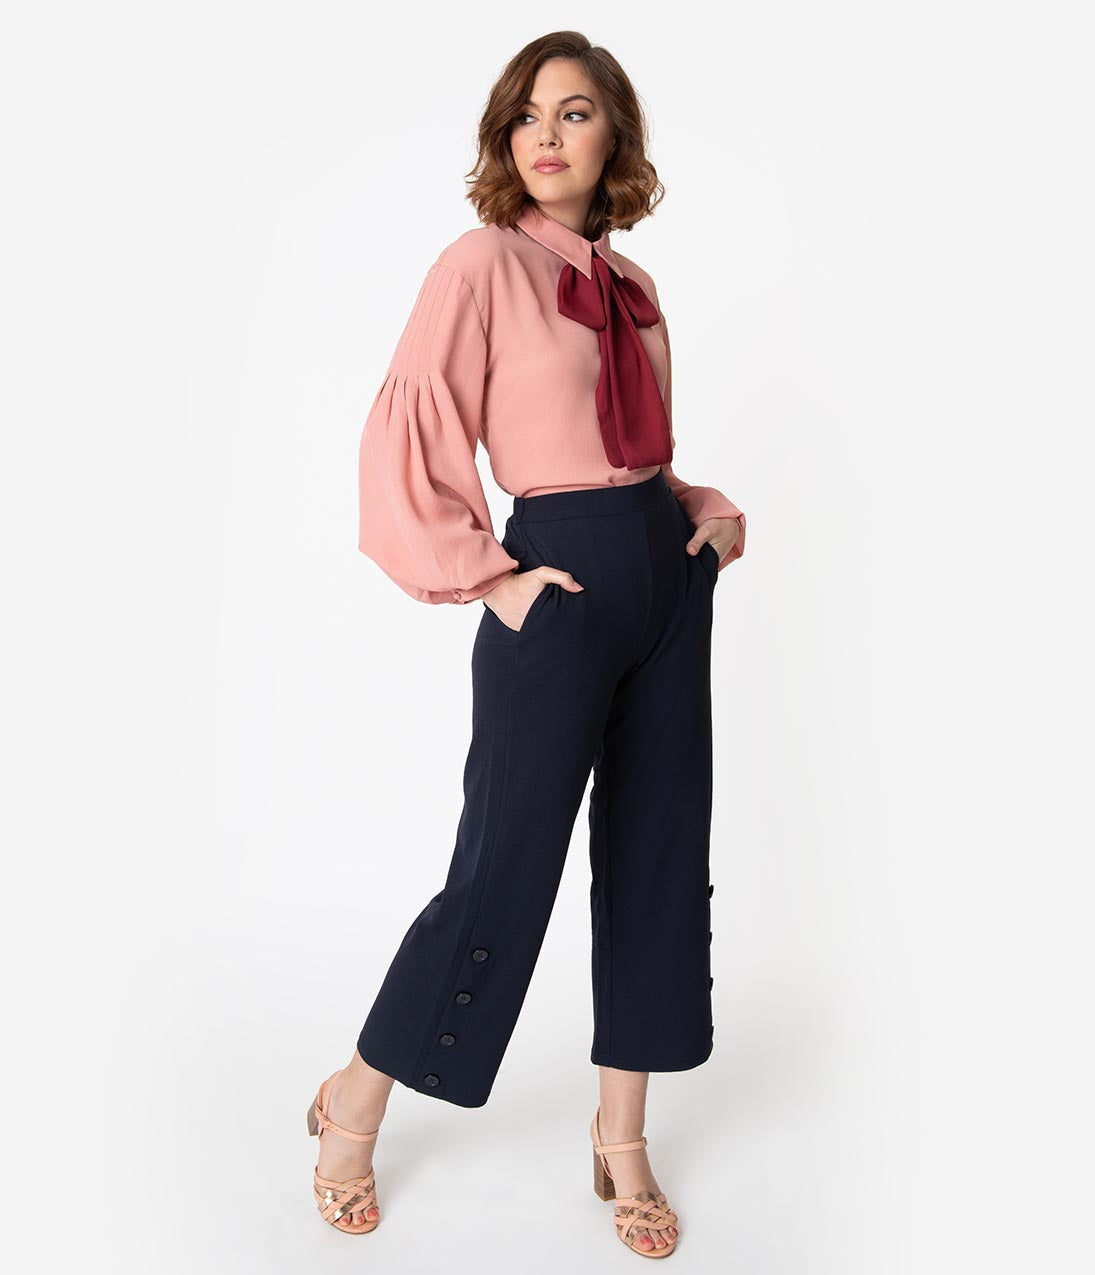 Vintage High Waisted Trousers, Sailor Pants, Jeans 1940S Style Navy Blue Button Trocadero Crop Pants $58.00 AT vintagedancer.com